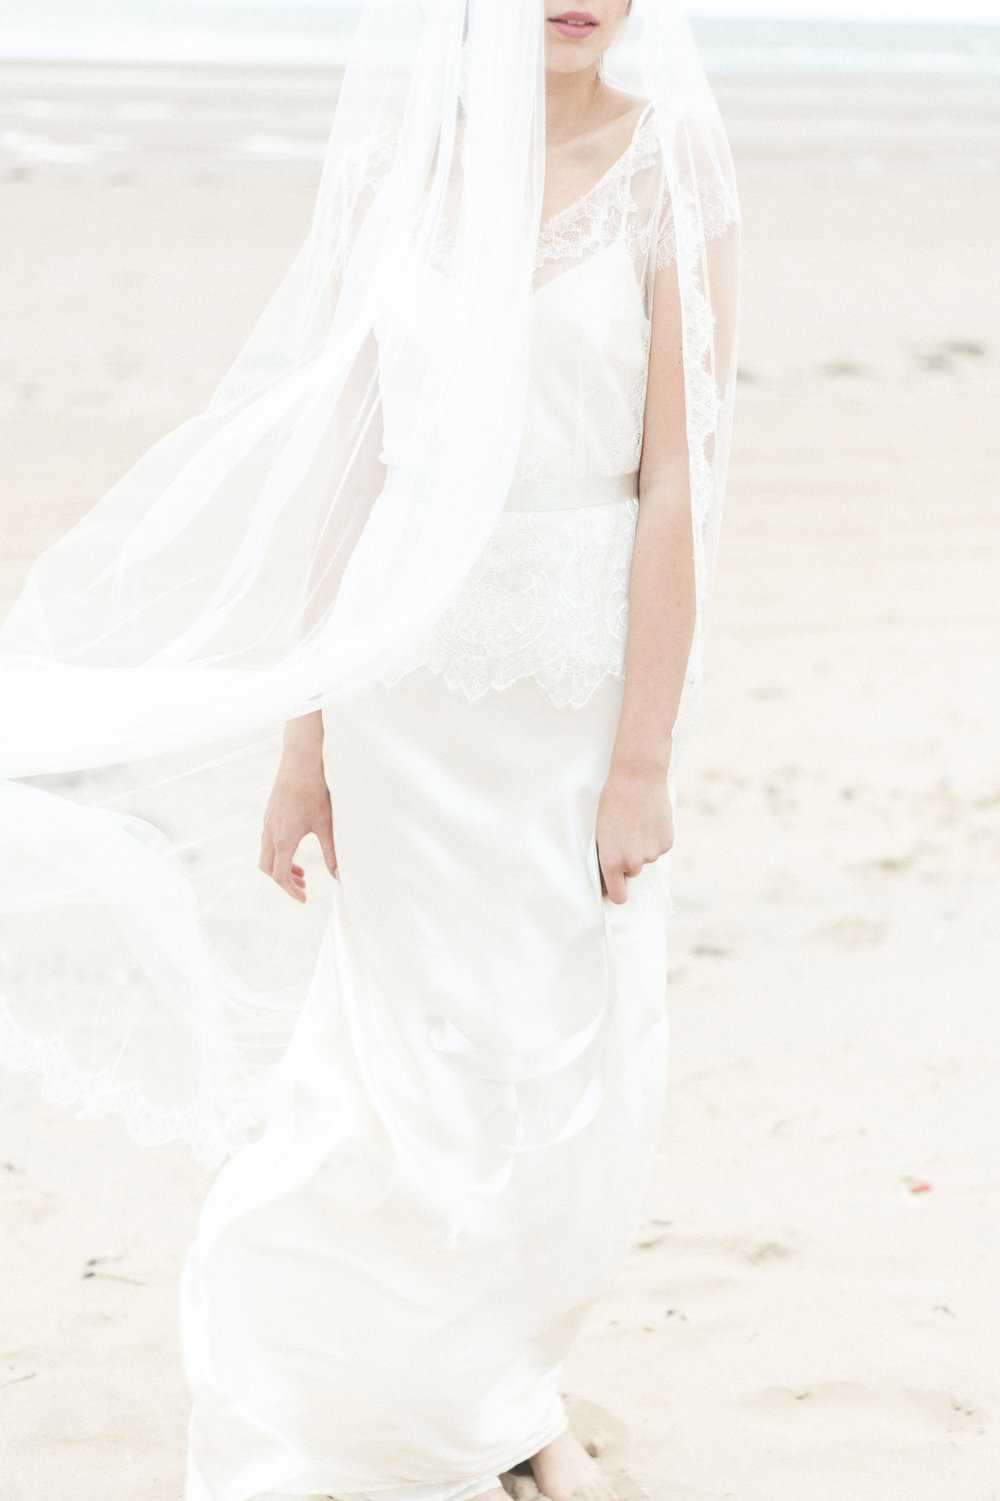 Kate-Beaumont-Wedding-Dresses-Formby-Beach-Emma-Pilkington-43.jpg